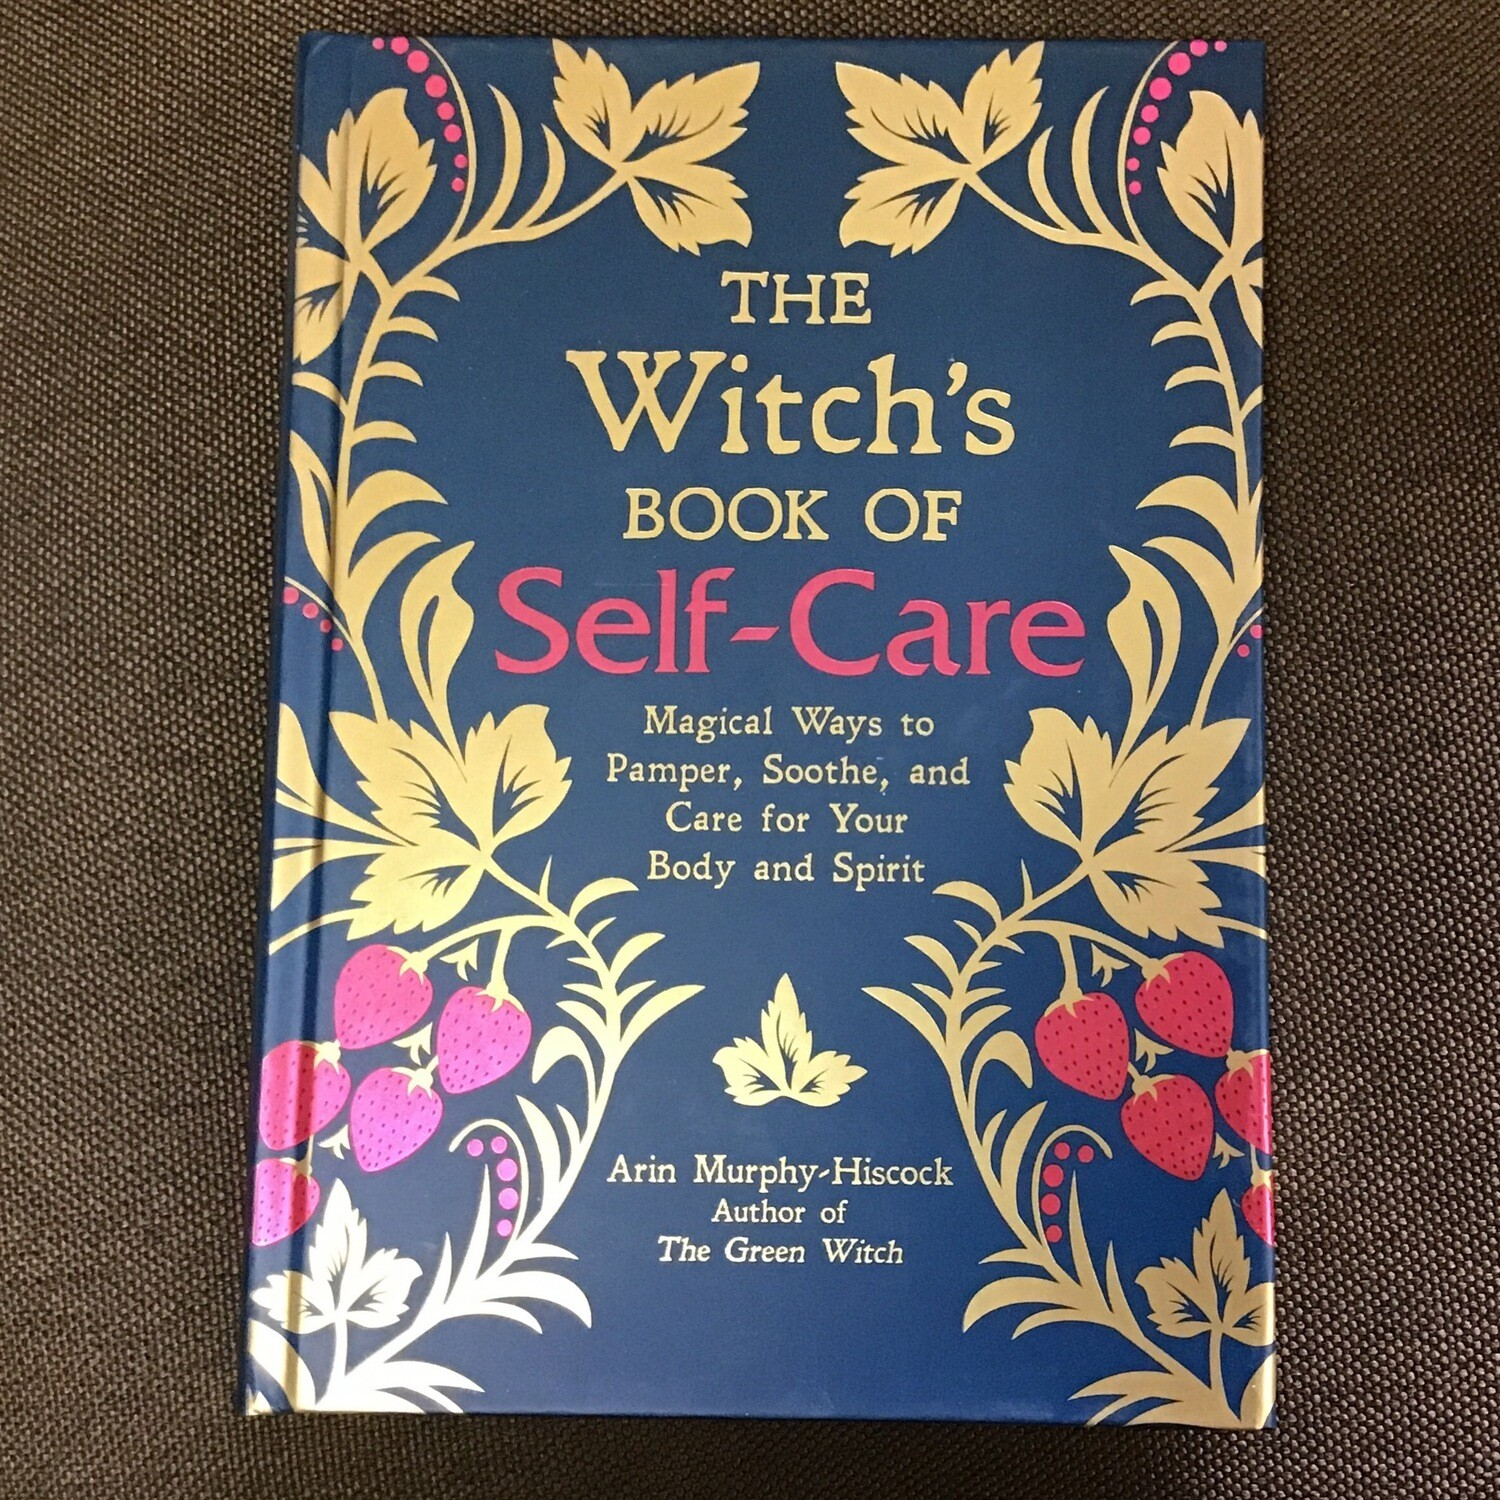 The Witch's Book of Self-Care by Arin Murphy-Hiscock